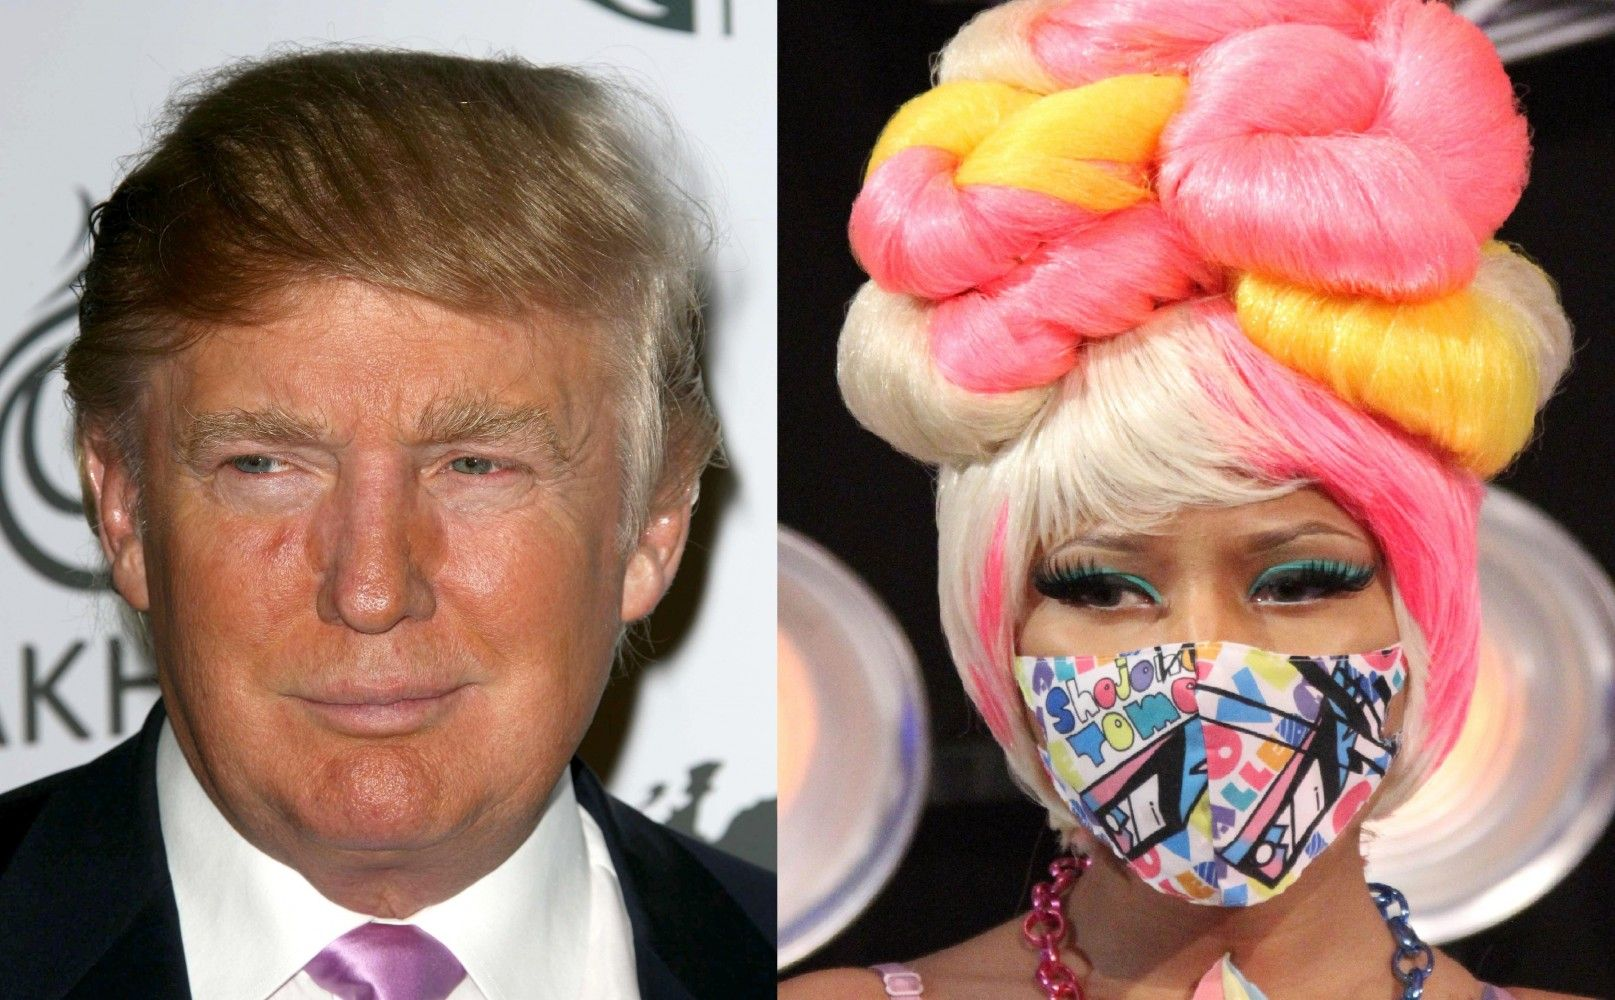 10 Celebrities With Worse Hairstyles Than Donald Trump